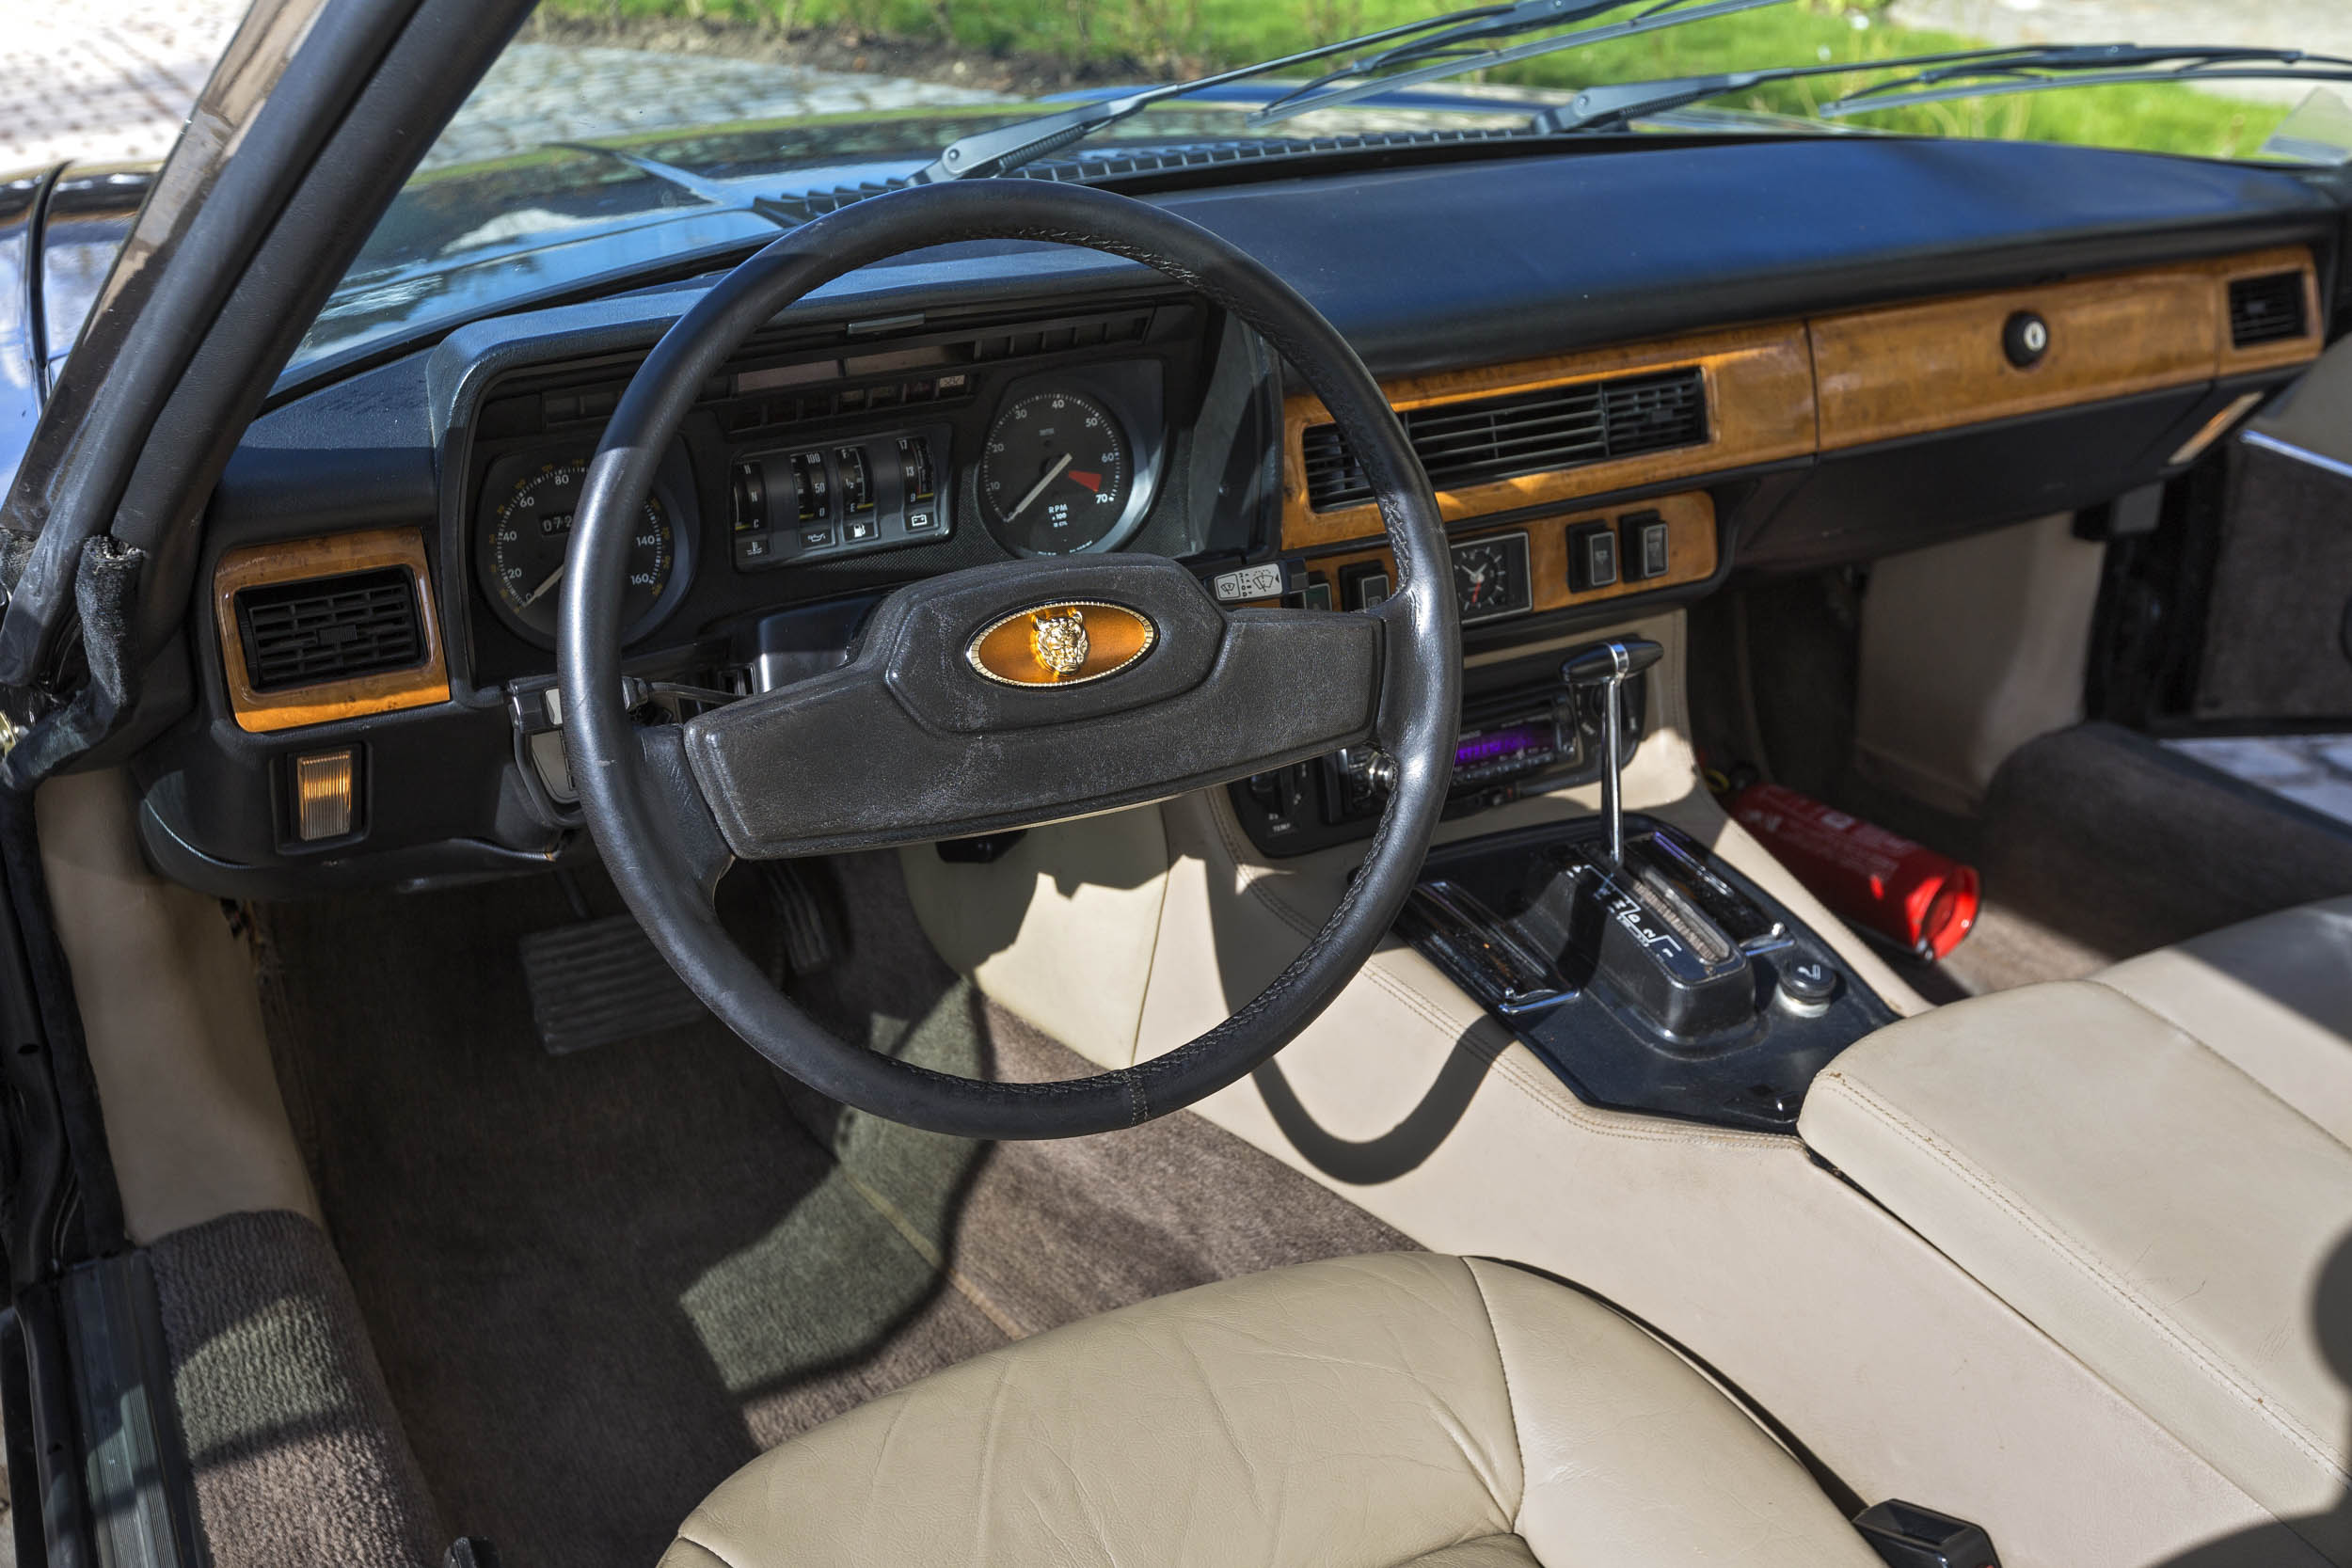 1984 Jaguar XJ-S steering wheel